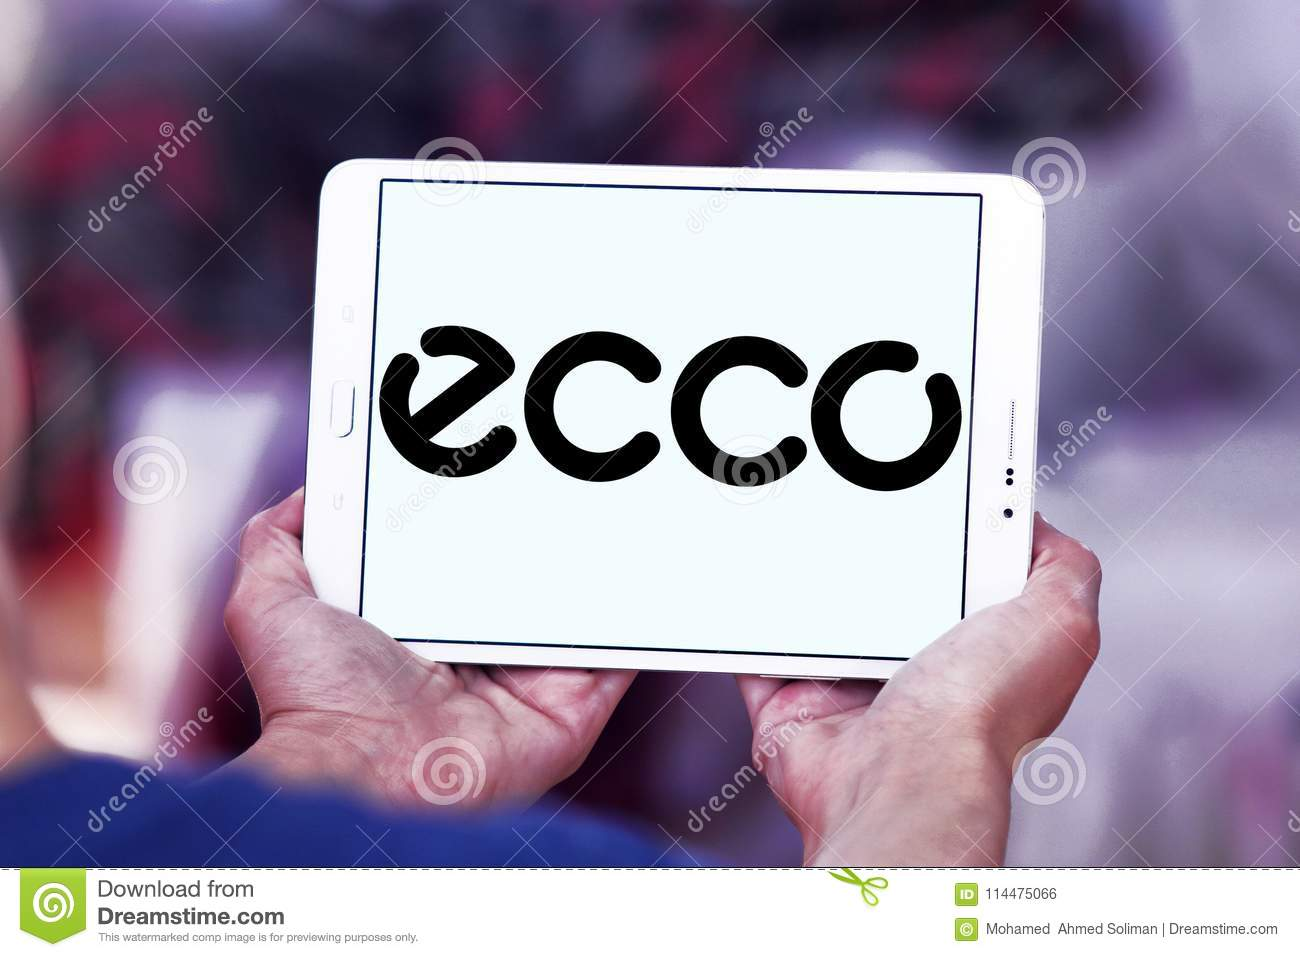 ECCO Shoe Manufacturer Logo Editorial Photography Image of